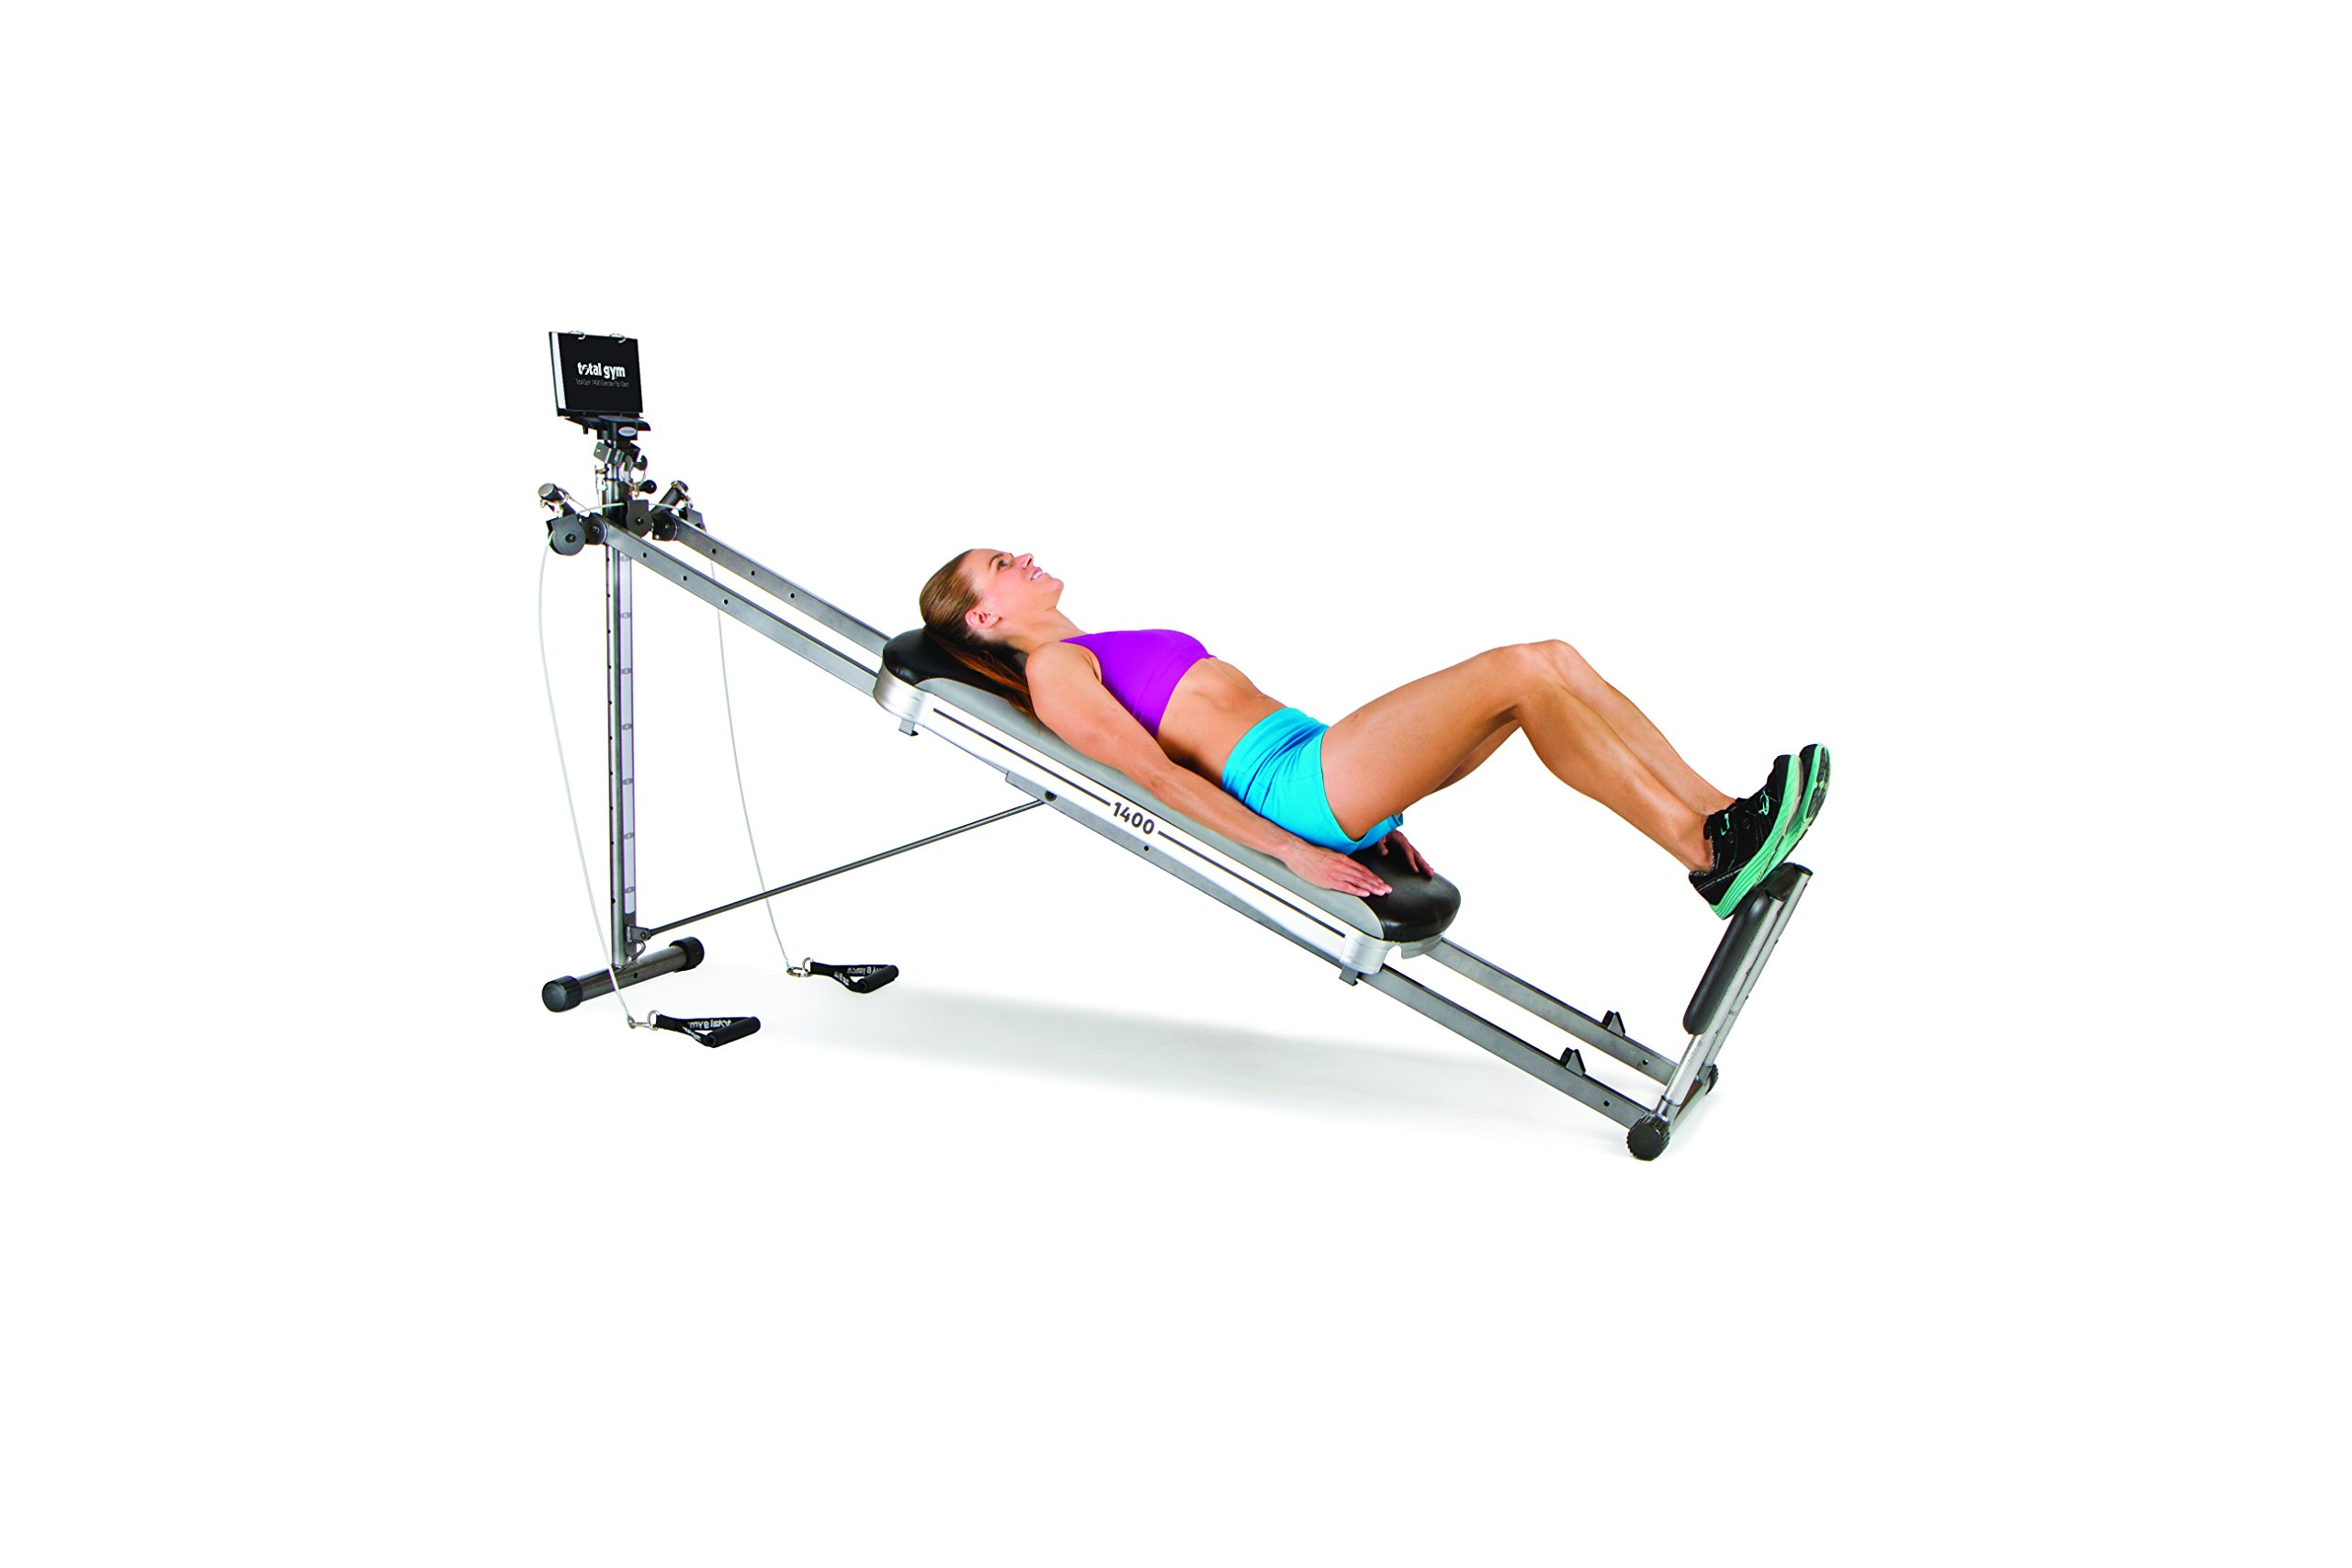 Total Gym 1400 Leg Exercise Machines by Total Gym (Image #2)